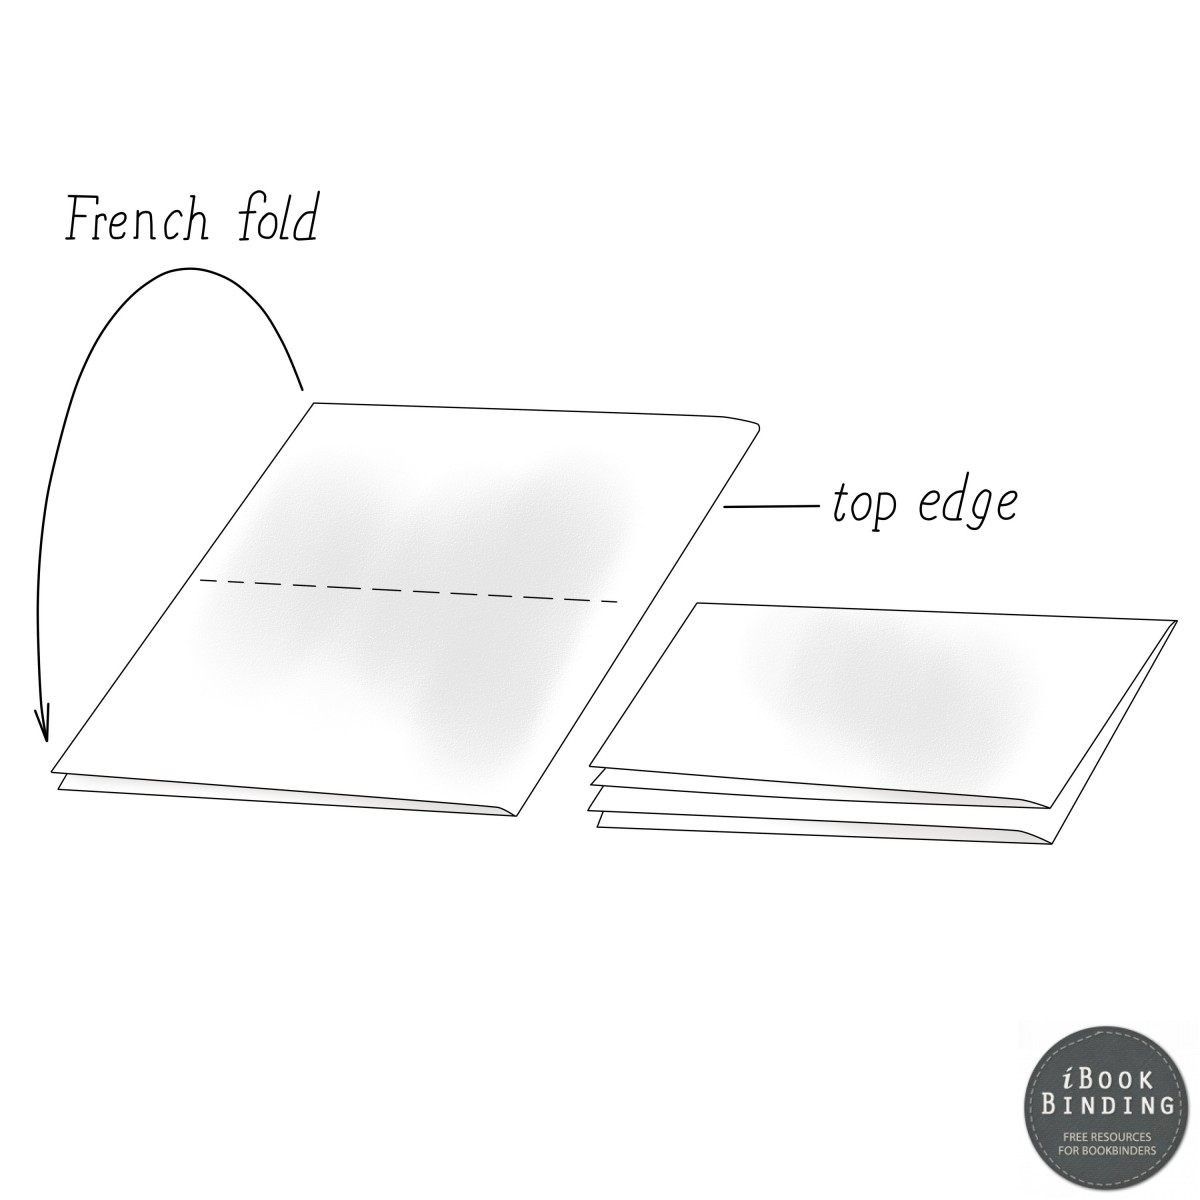 Figure 34 - An Example of a French Fold